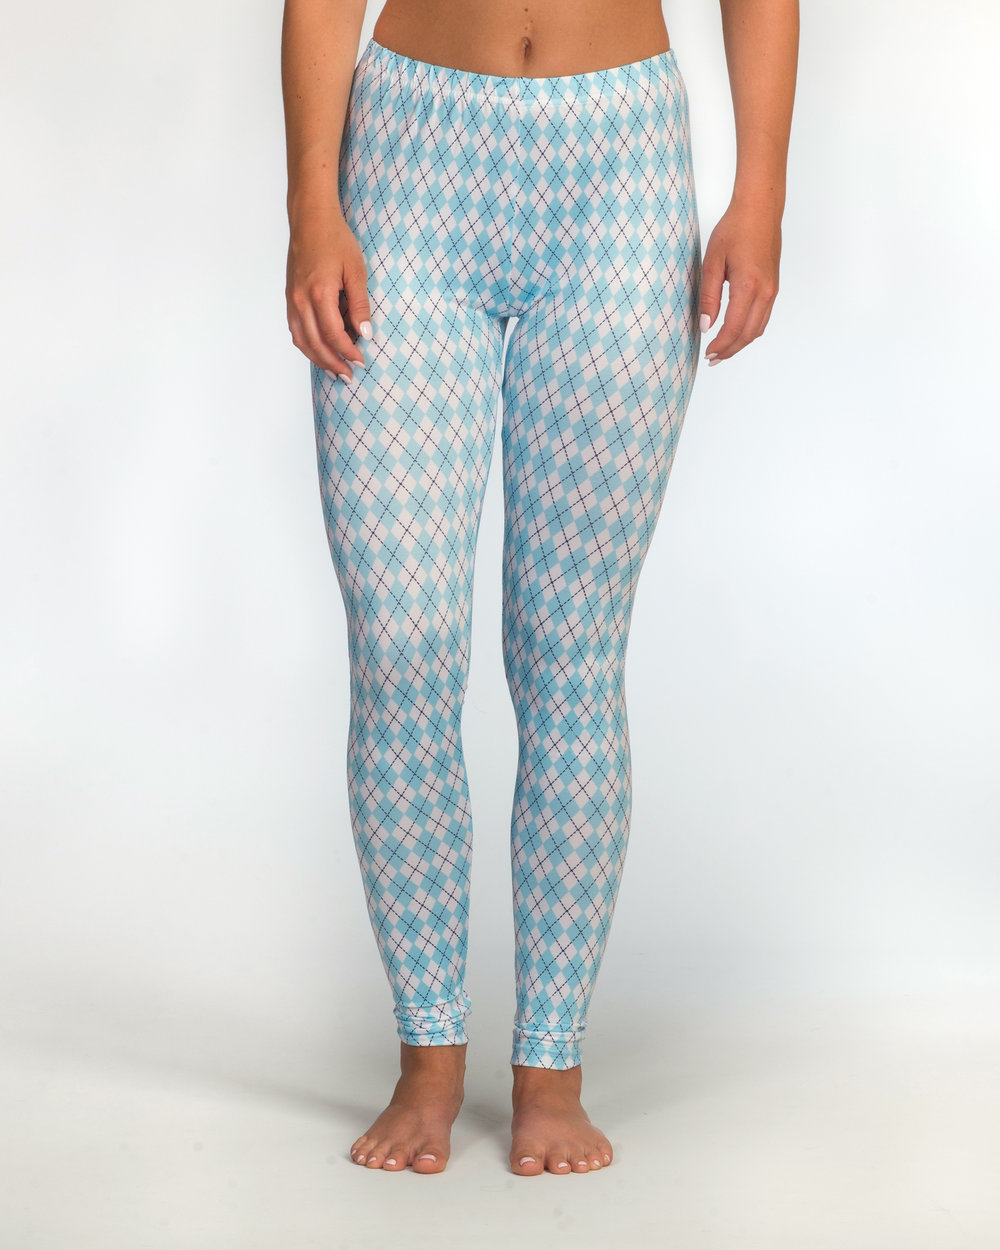 "Madison is 5' 6"" tall, has 31"" hips, and is rockin' a size S in our UNC Argyle Leggings."